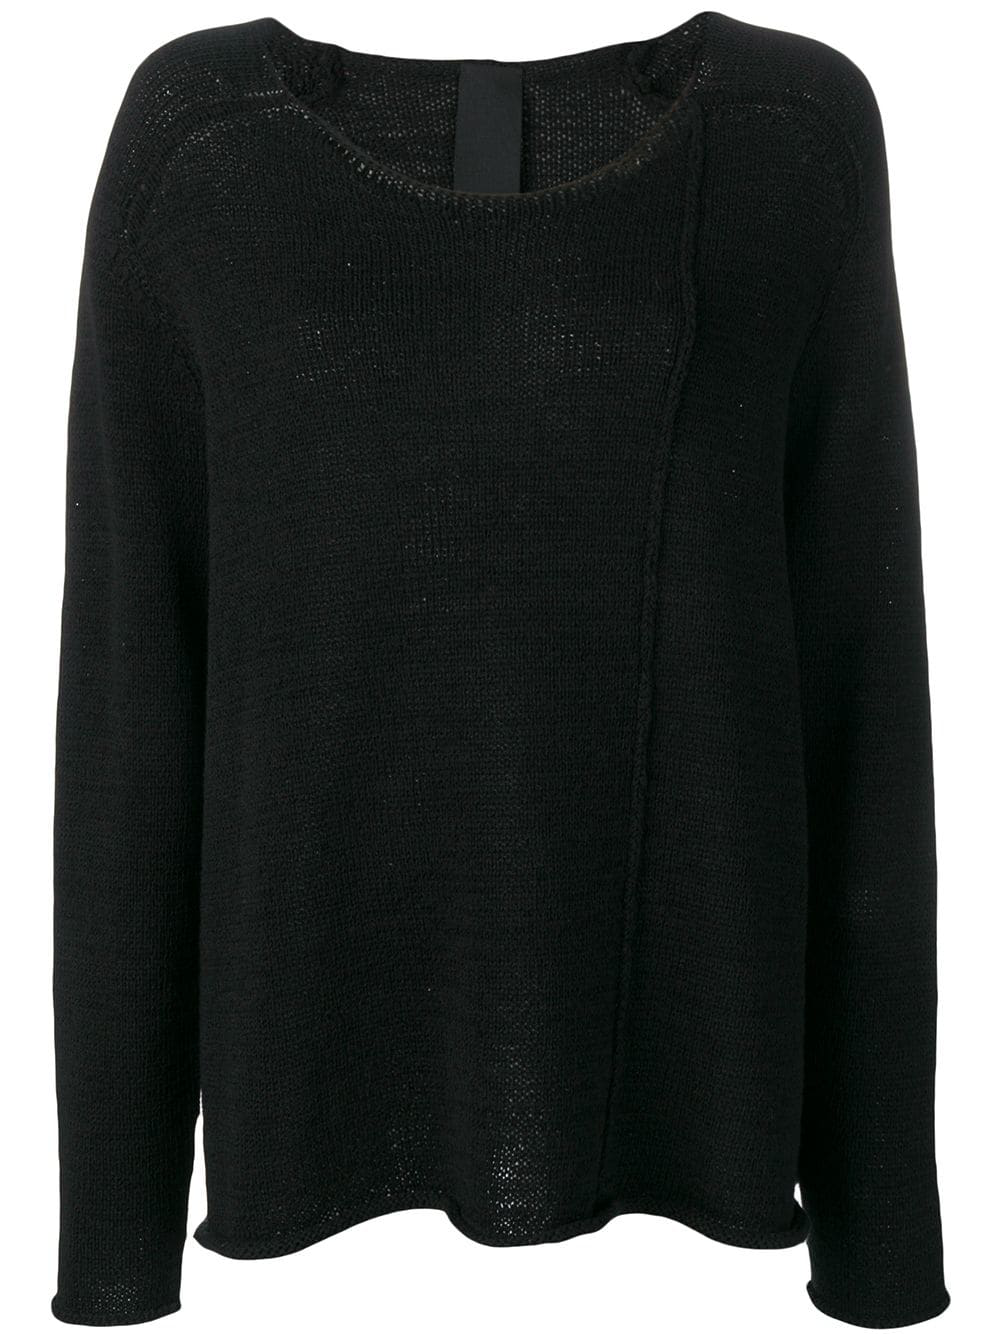 b71773e844a0e1 Rundholz Black Label Knitted Large Pullover